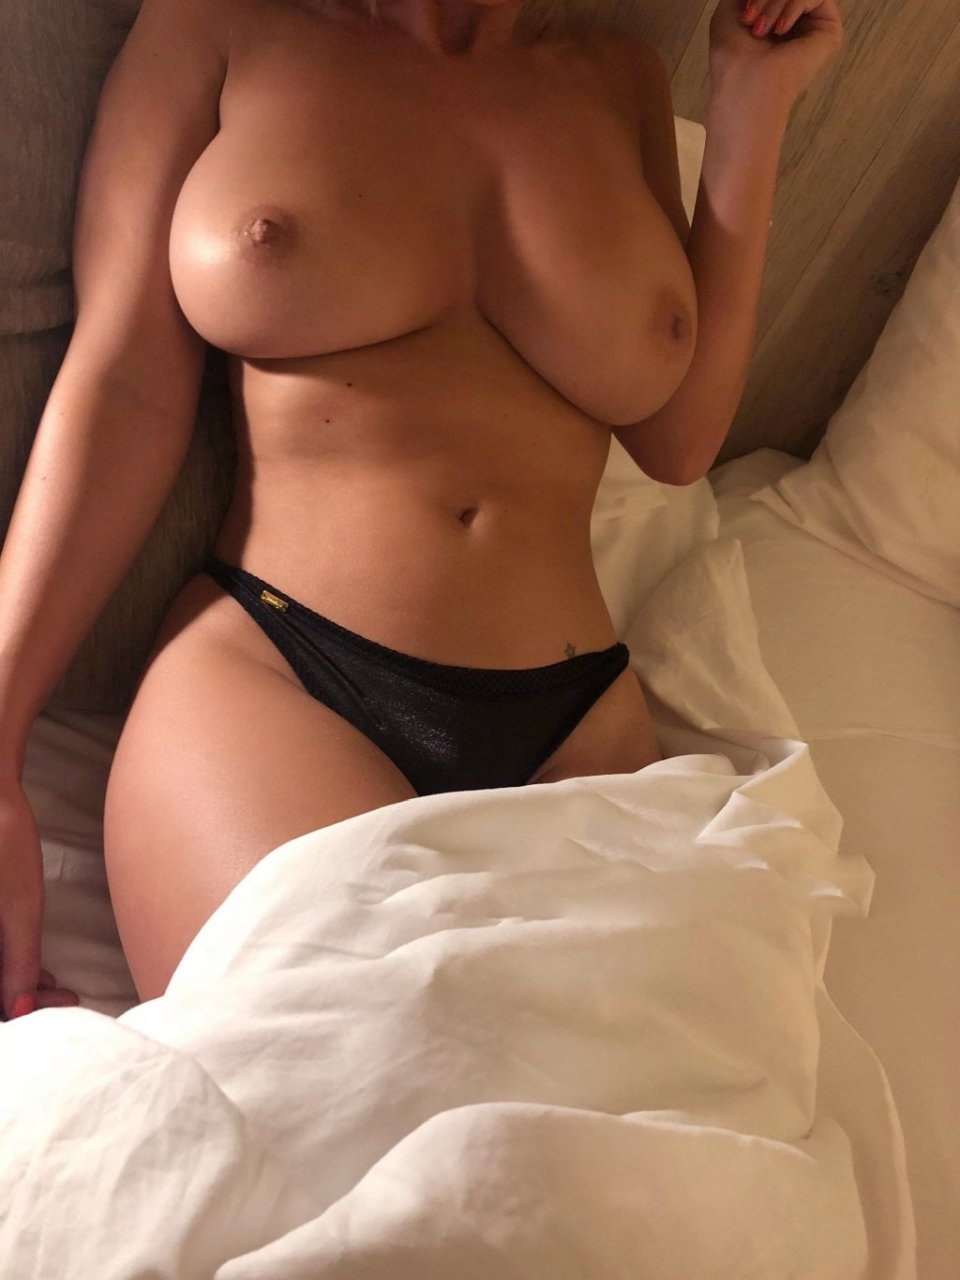 Rhian Sugden Nude Leaked The Fappening (2 New Photos)